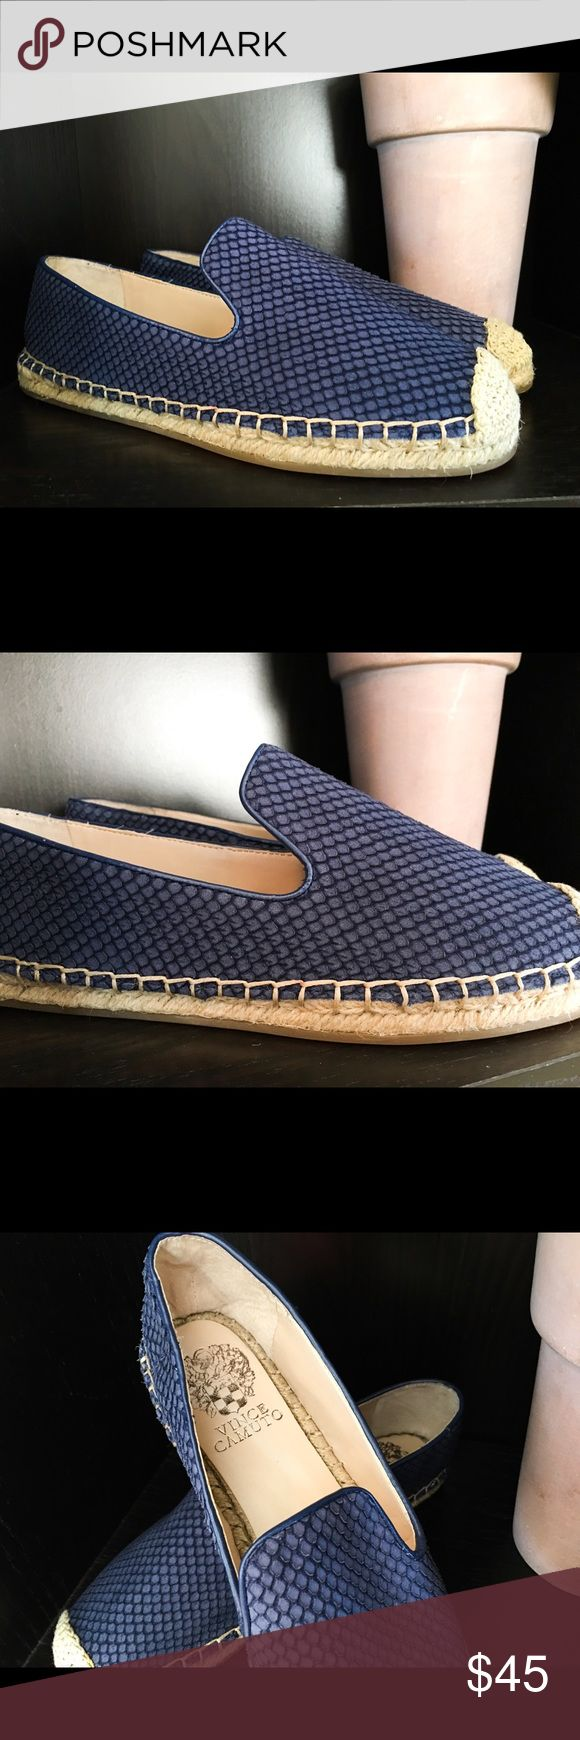 🌷BDAY SALE🌷On Trend Vince Camuto Espadrilles NWOB Blue Vince Camuto Espadrilles that are a perfect fashion statement. These would look excellent with white leggings. Leather padding and interior. Make these your go-to shoes for shopping, leaving the ballet barre, or for the family outing to the park. Enjoy! Vince Camuto Shoes Espadrilles